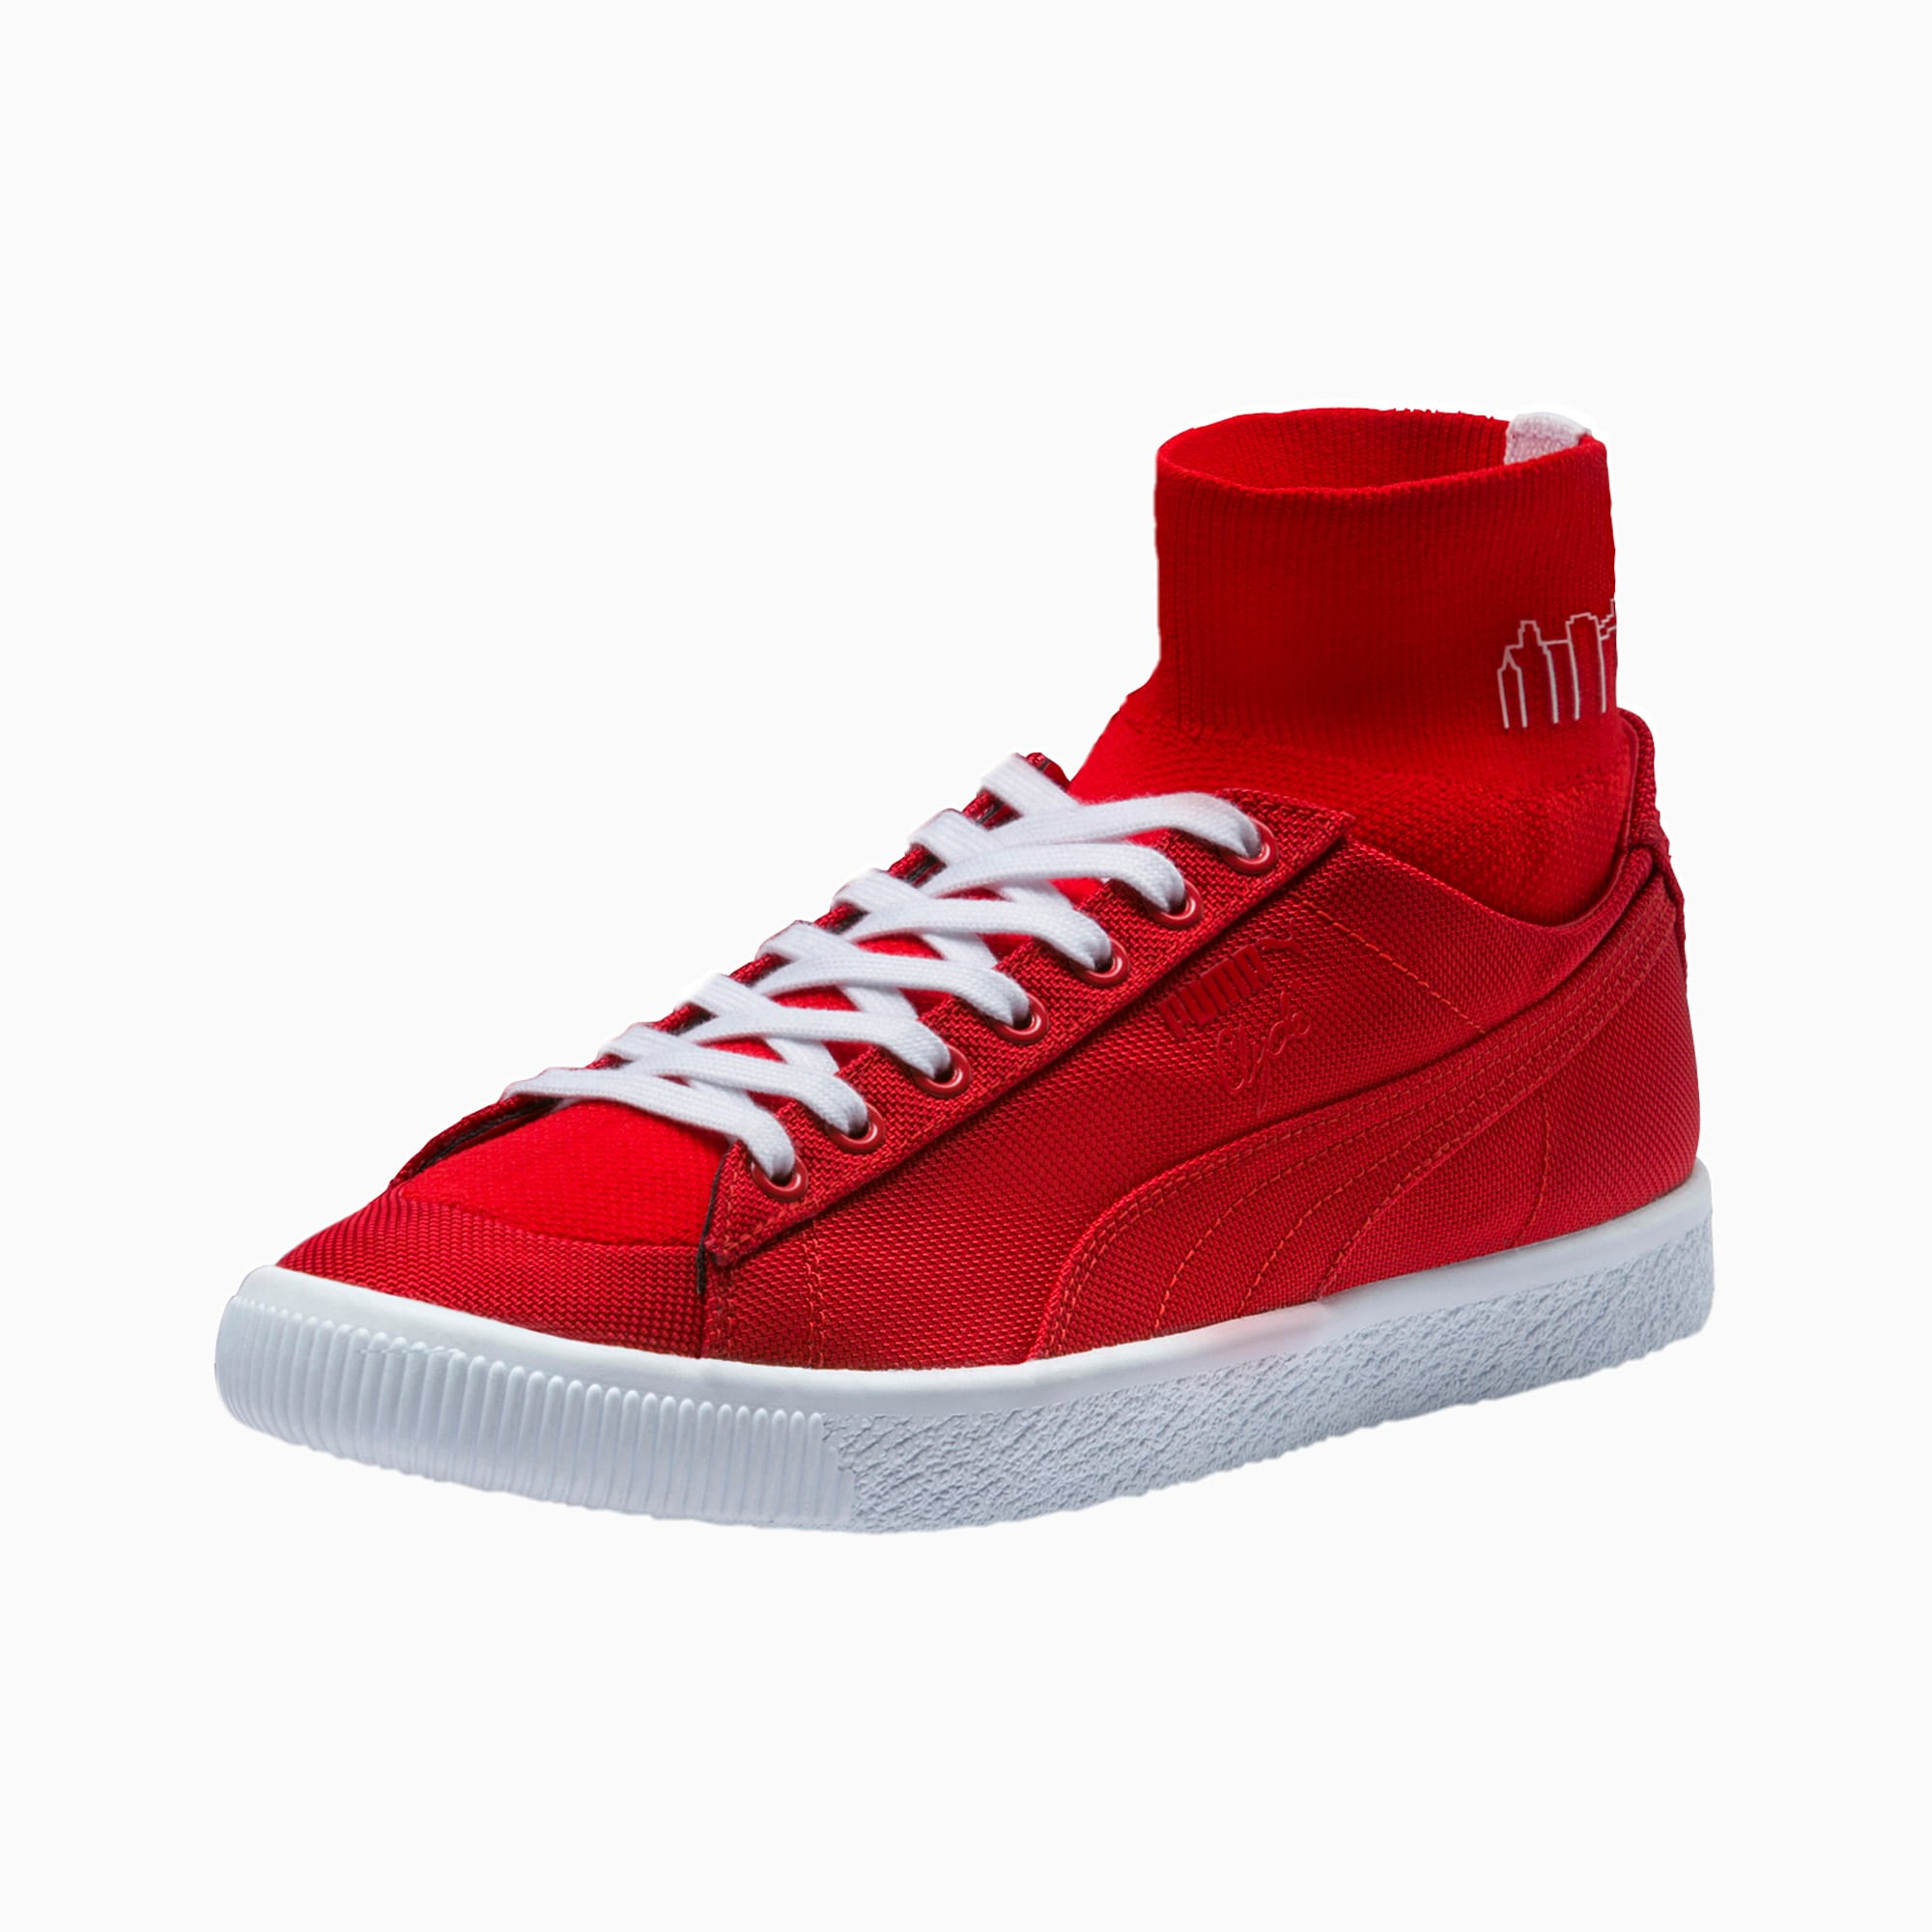 PUMA x MANHATTAN PORTAGE Clyde Sock Sneakers